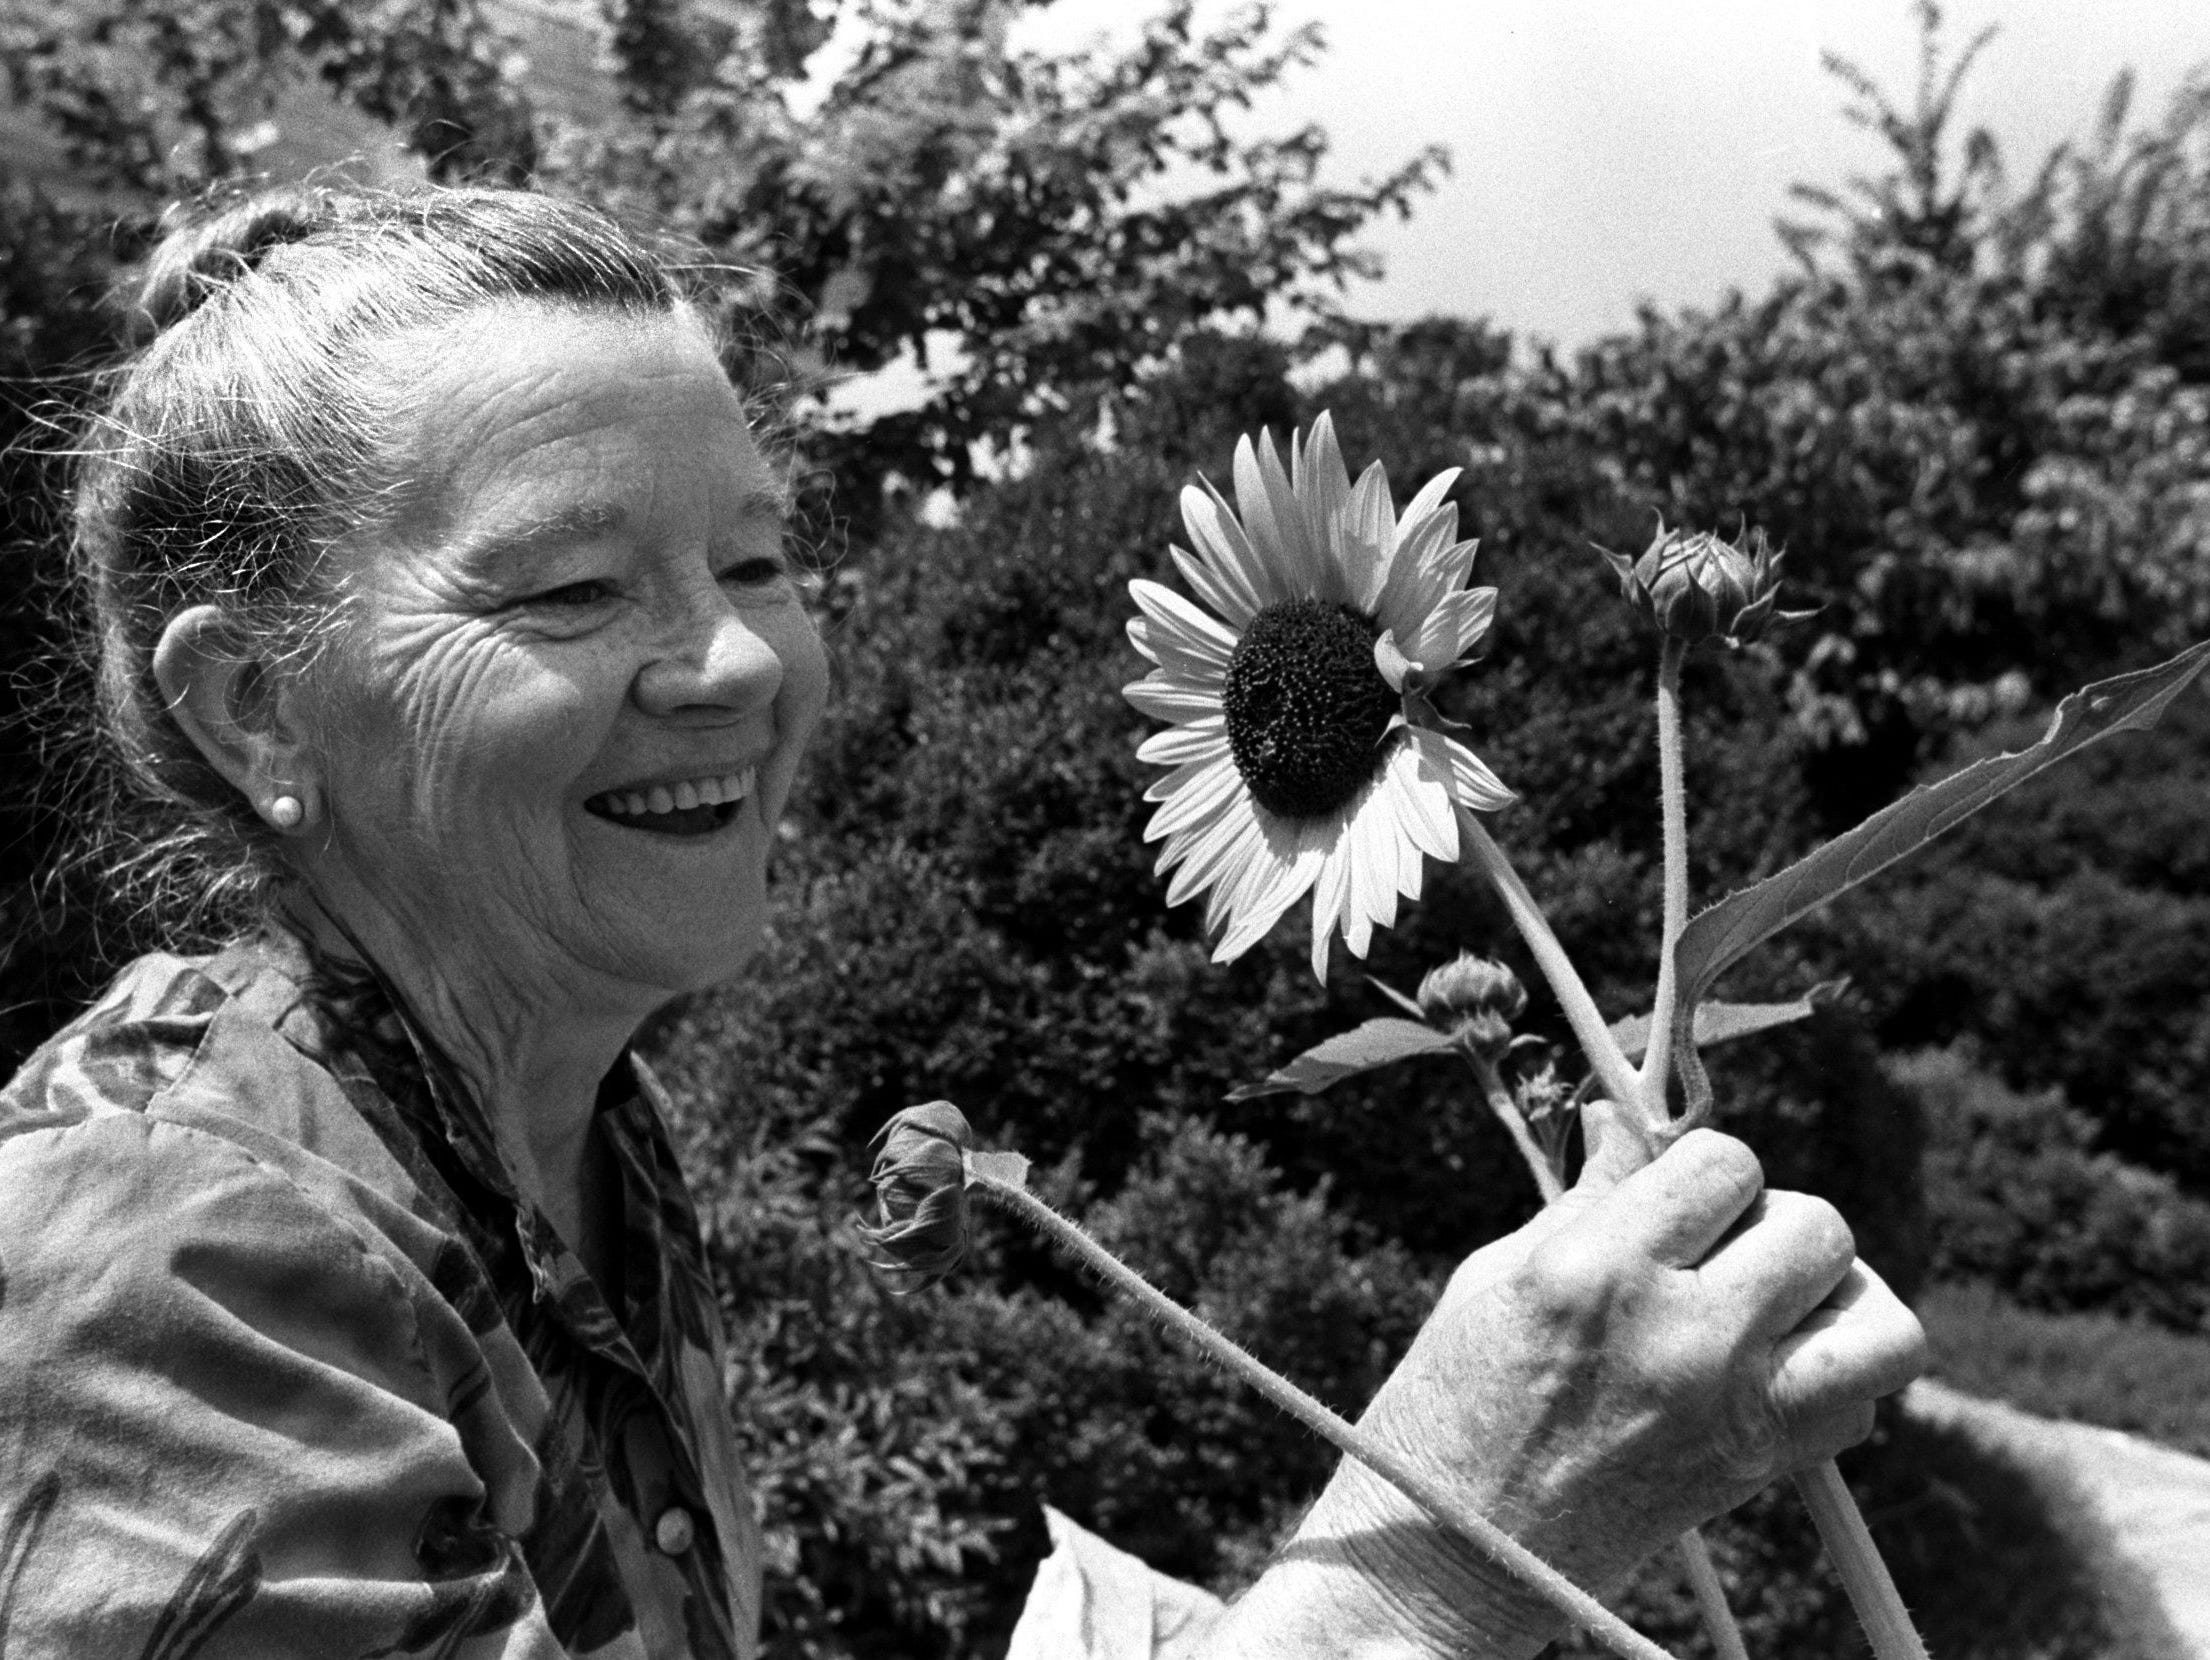 Mrs. Birdie Edwards admires one of the sunflowers in front of her house at 1283 Peabody Avenue on 29 June 1979.  She began growing the flowers three years ago for the small birds, but now she has a row almost all the way across her yard.  In fact, she says she has enough seeds for everyone on Peabody to have sunflowers if they like.